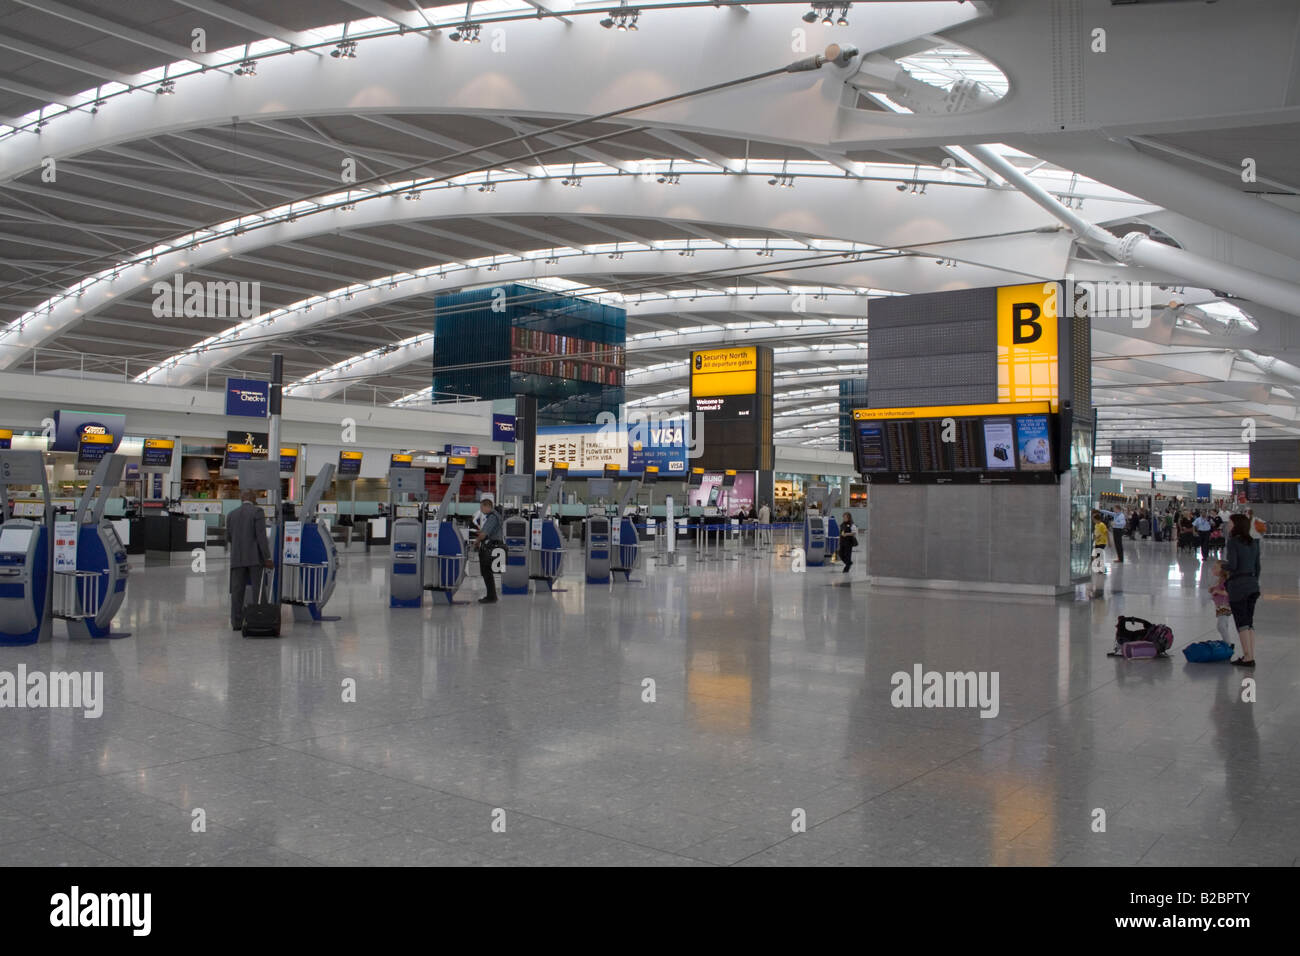 Terminal 5 departures, Heathrow Airport - Stock Image